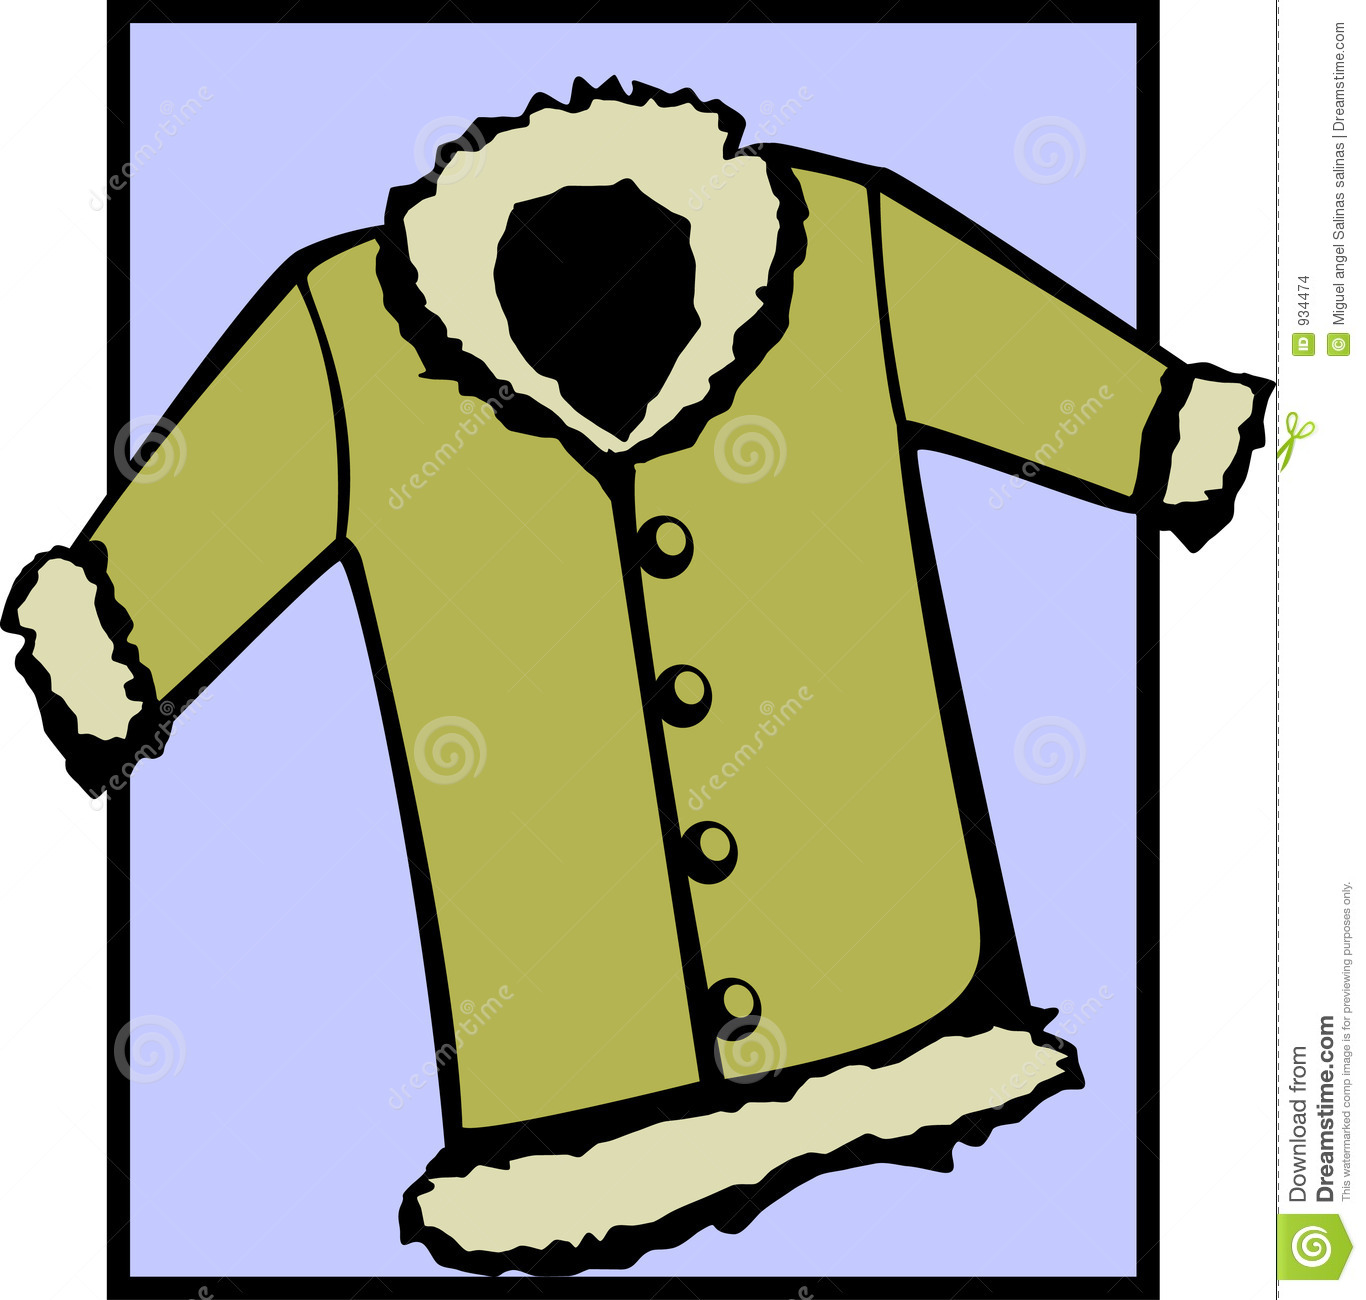 Fur Coat Or Winter Jacket    Clipart Panda   Free Clipart Images